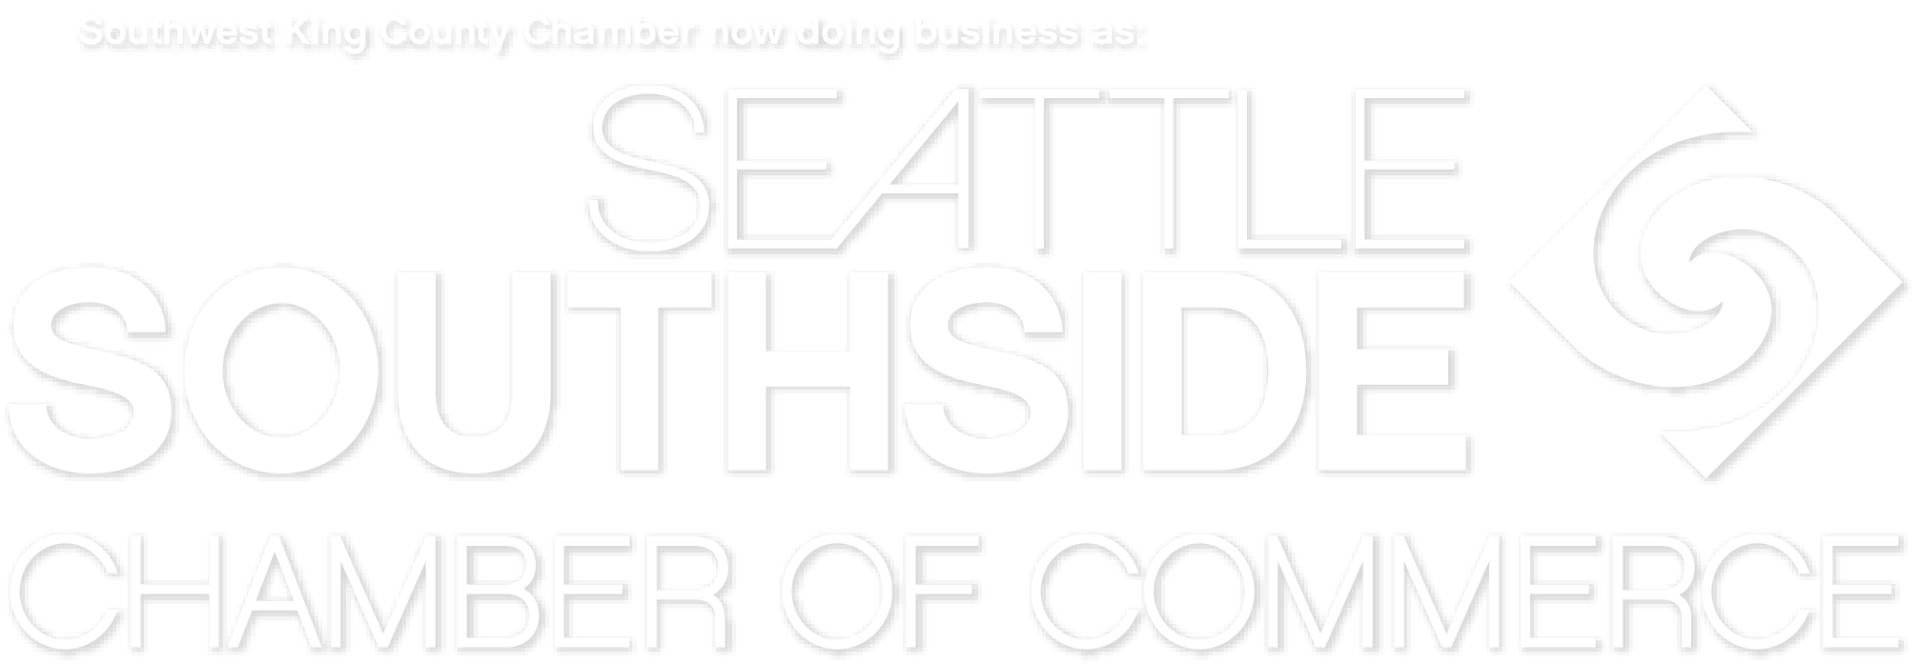 Seattle-Southside-Chamber-Logo-white-shadow-NOW-DOING-BUSINESS-AS-w1920.png